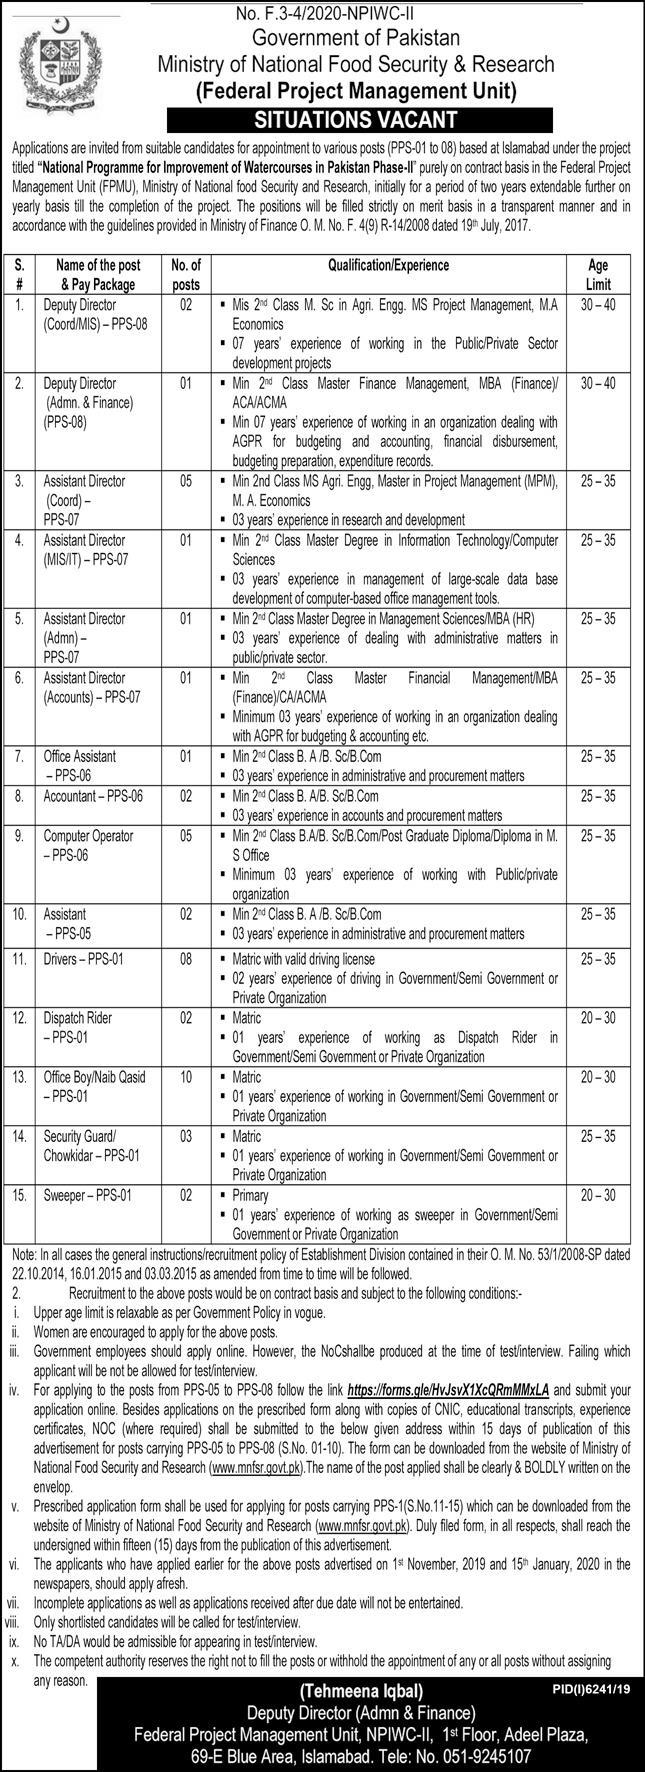 Government of Pakistan Ministry of National Food Security & Research Jobs May 2020